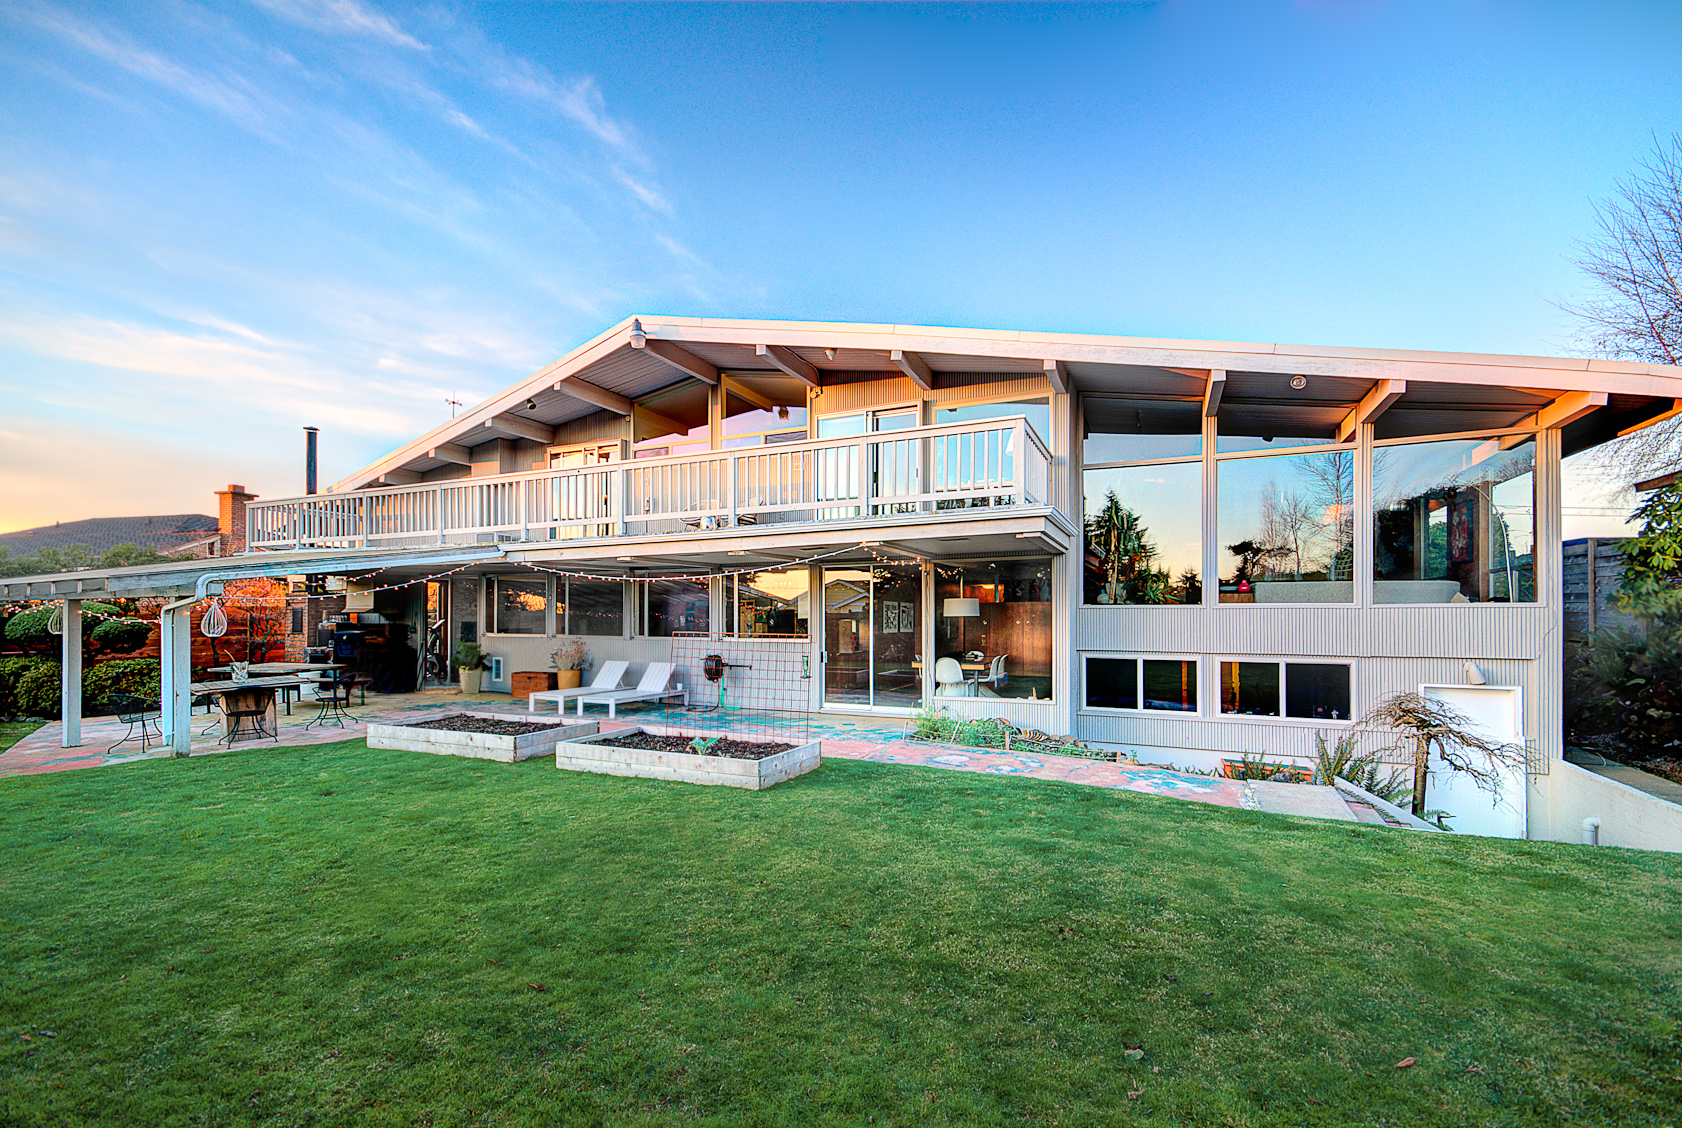 modern home tour may 27th - www.landrevillehomes